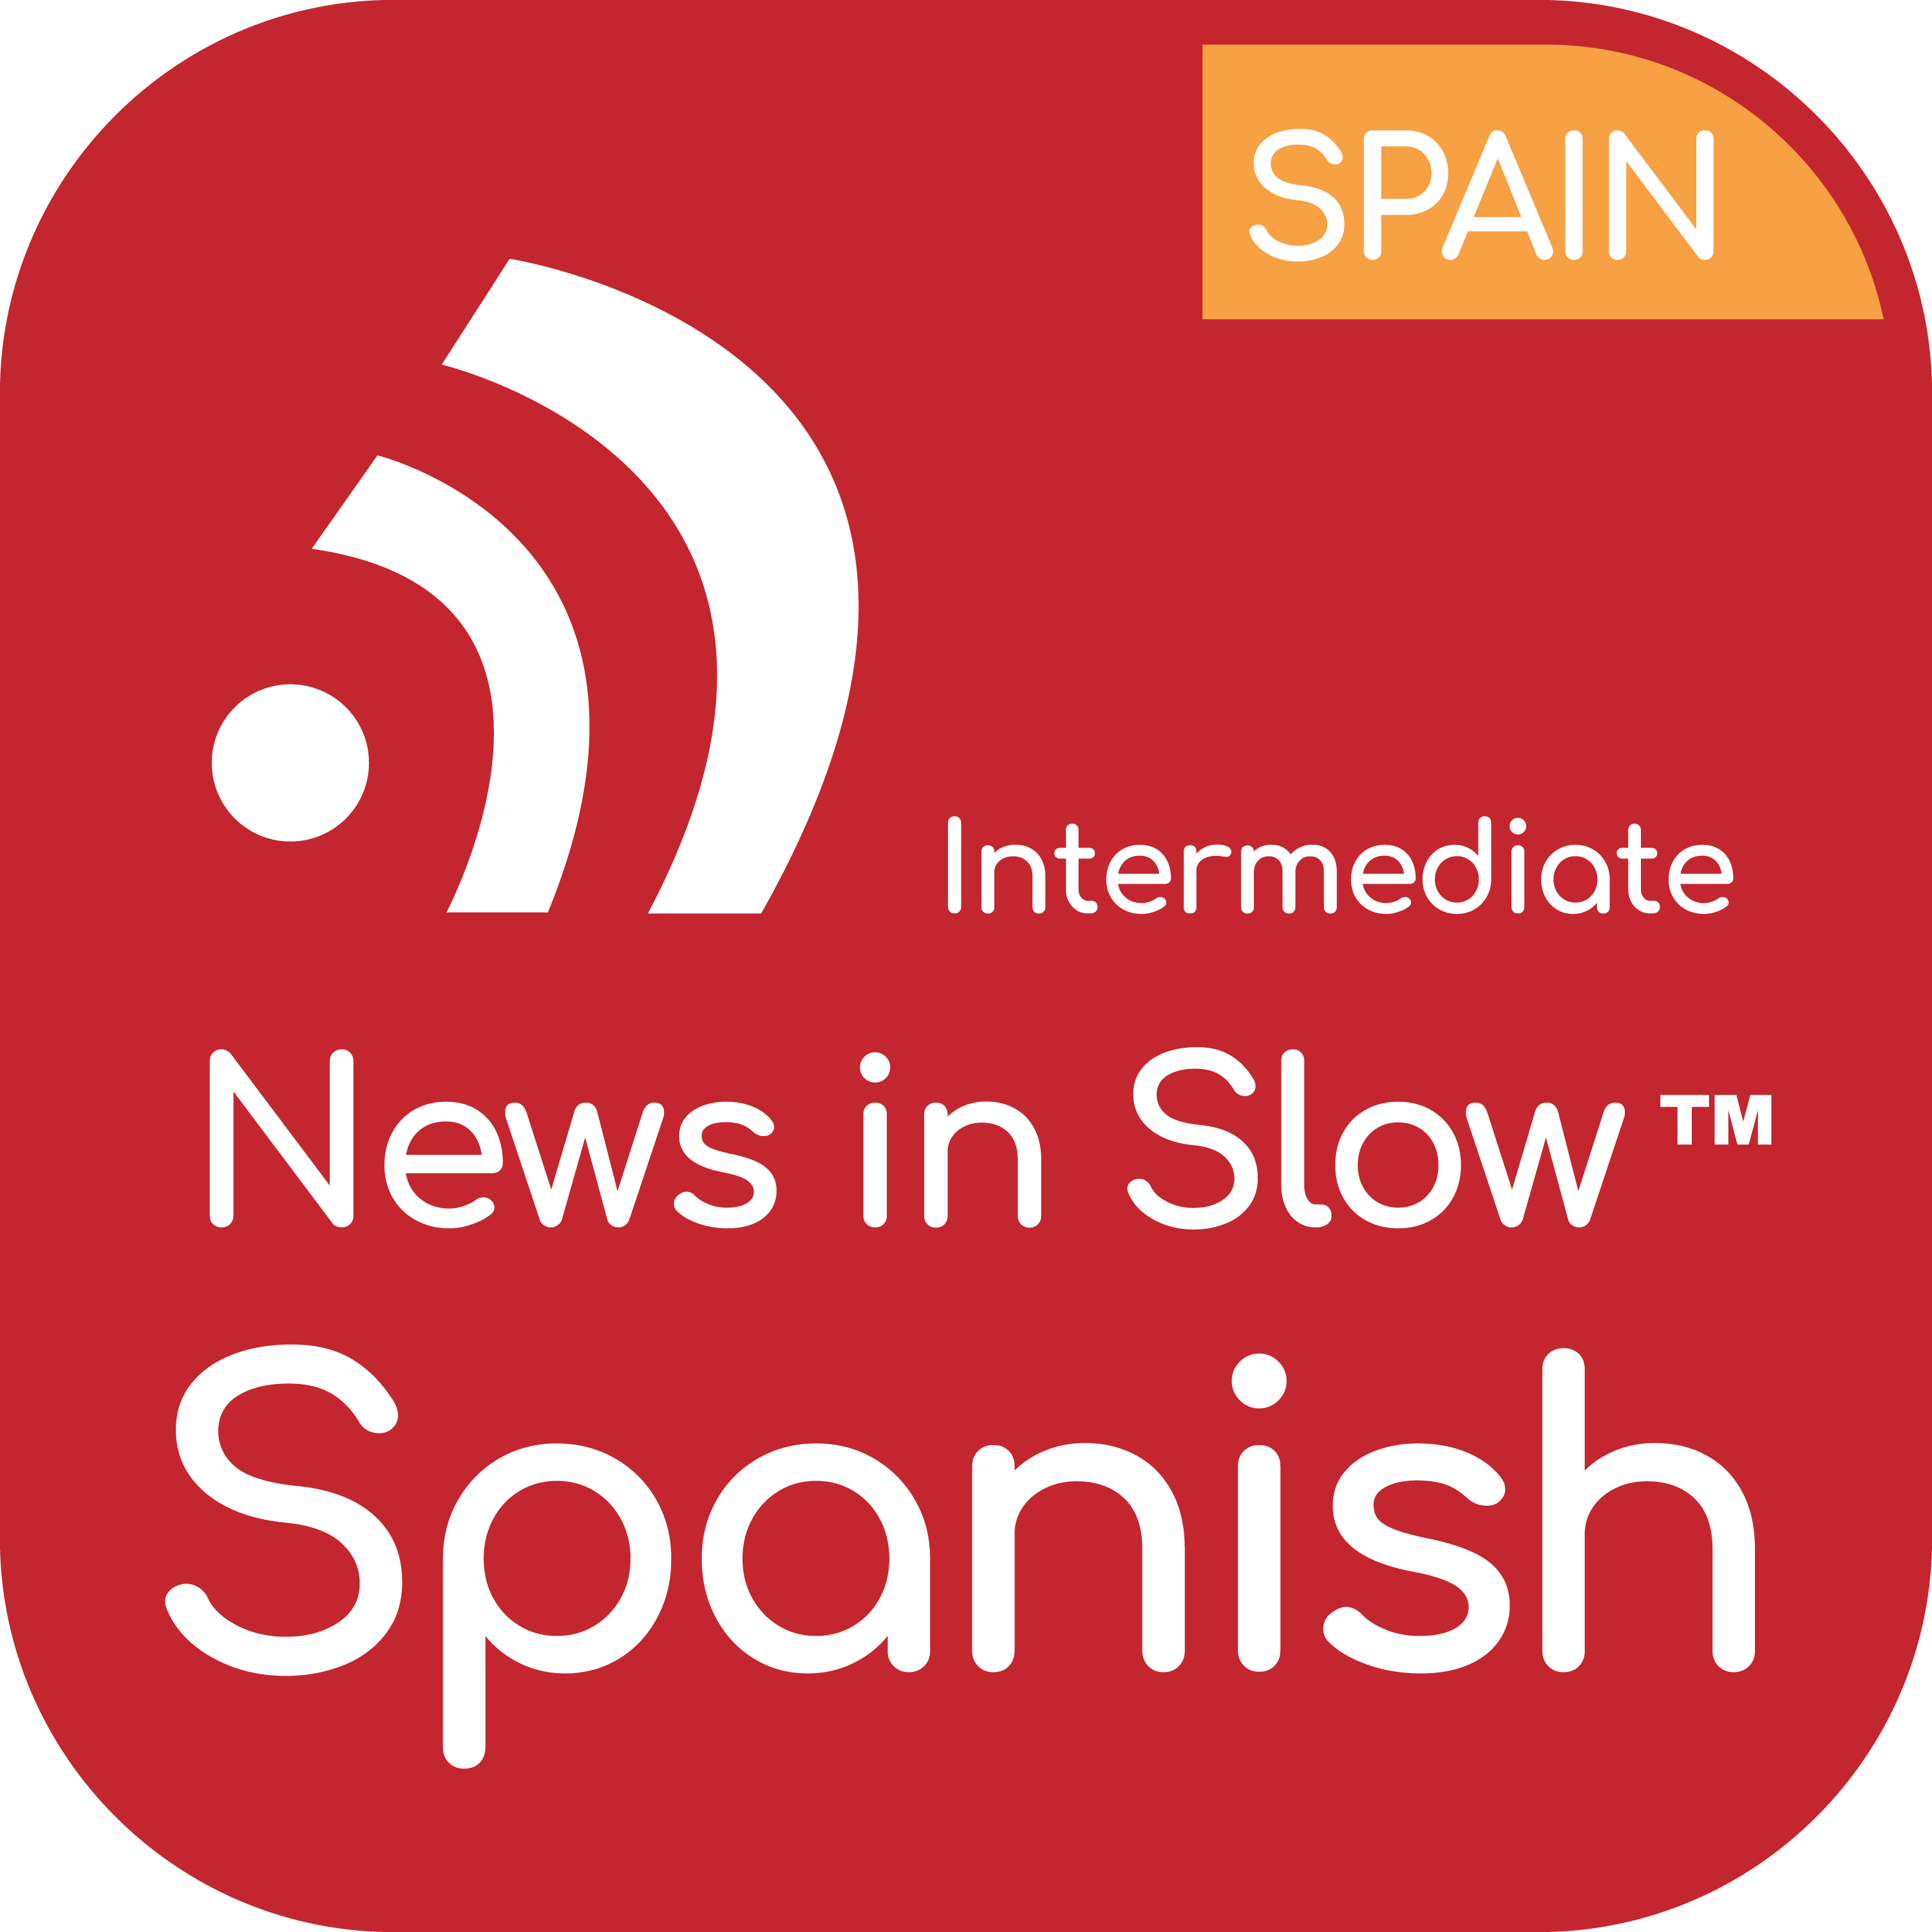 News in Slow Spanish - #575 - Study Spanish While Listening to the News